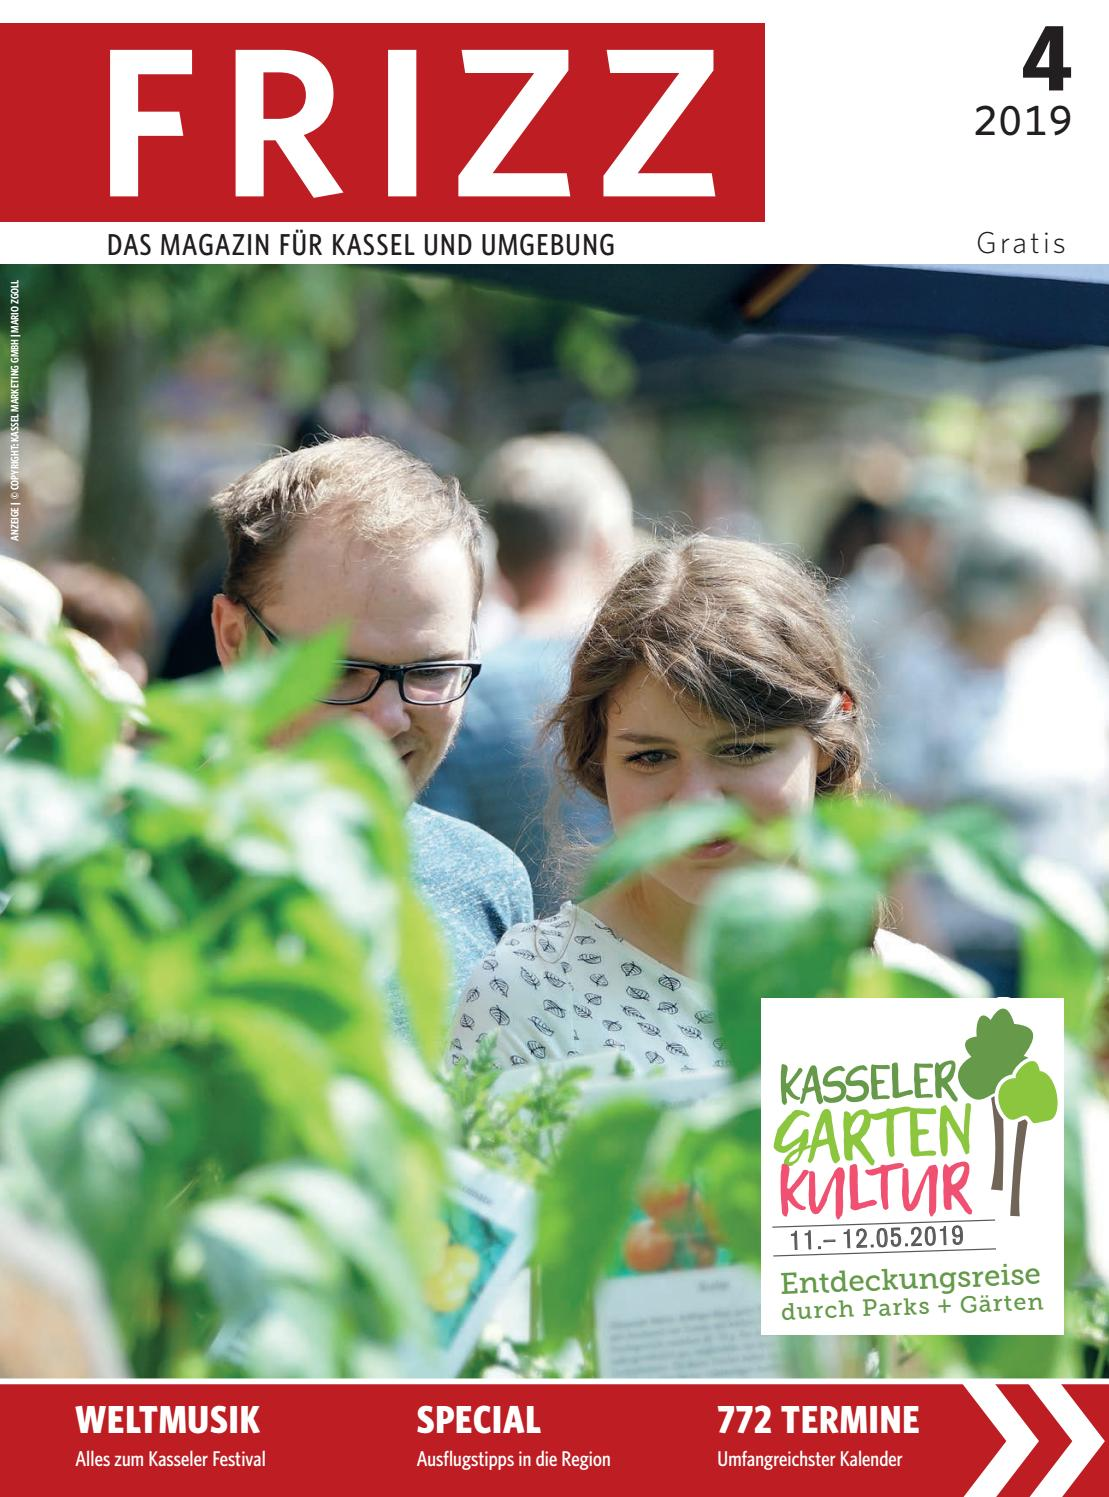 Flohmarkt Ziegenhain Termine Frizz Das Magazin Kassel April 2019 By Frizz Kassel Issuu